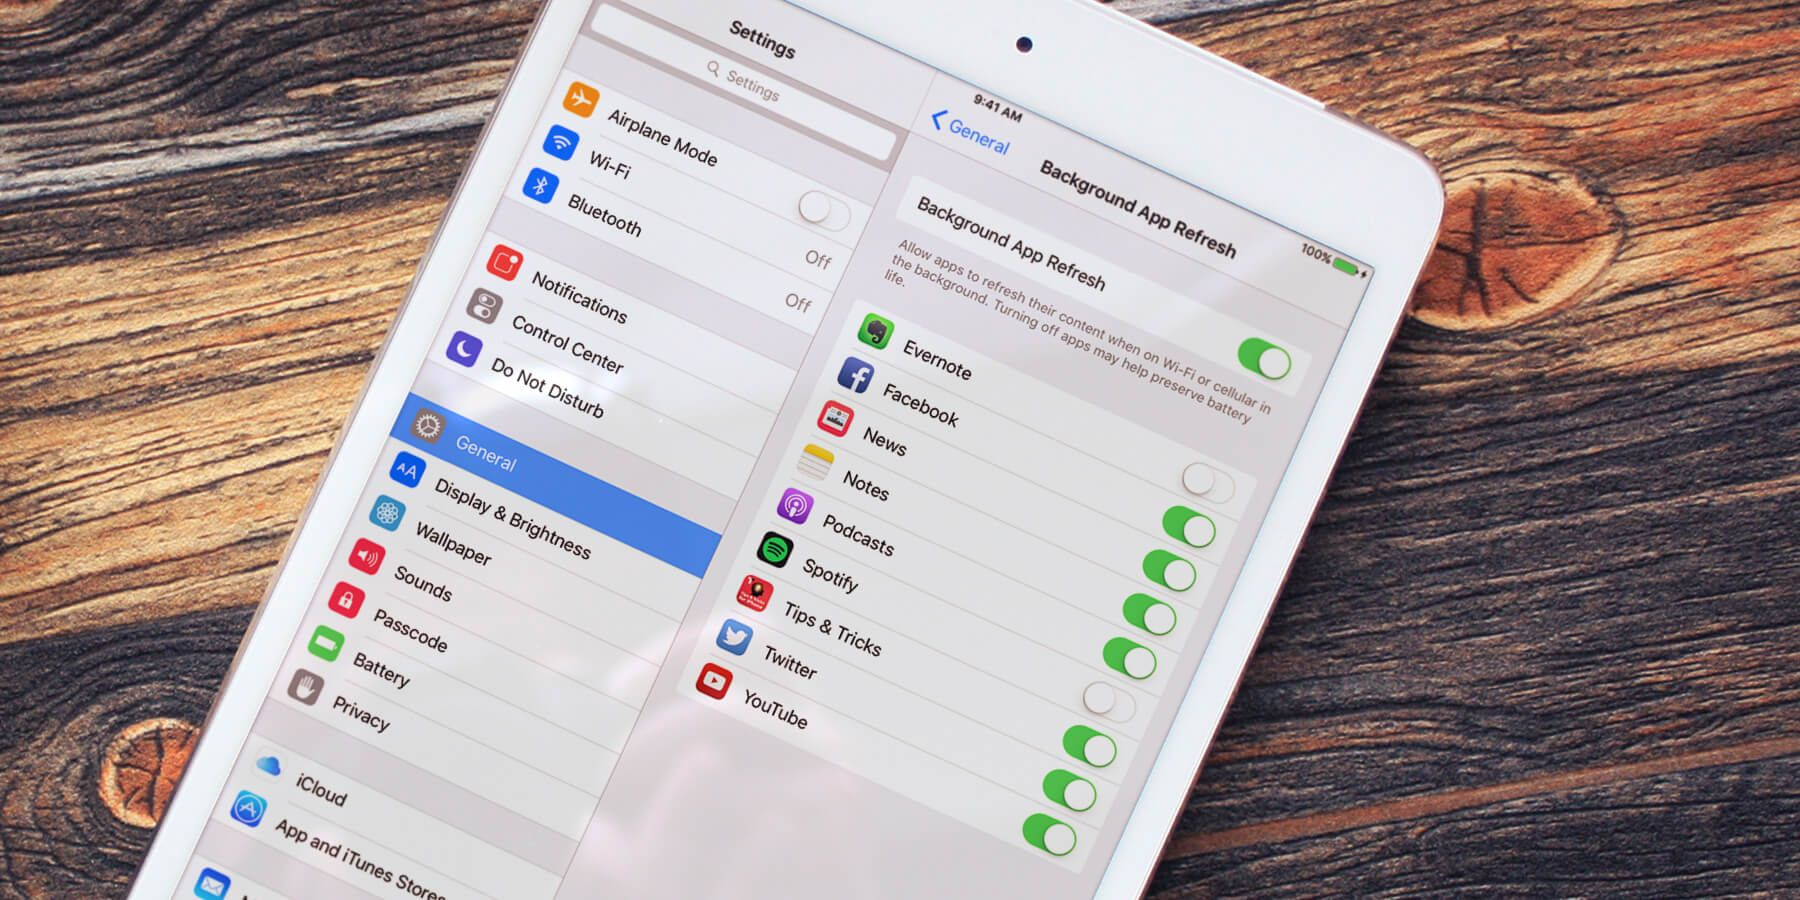 iOS 9 Disabling background app refresh on iPad App